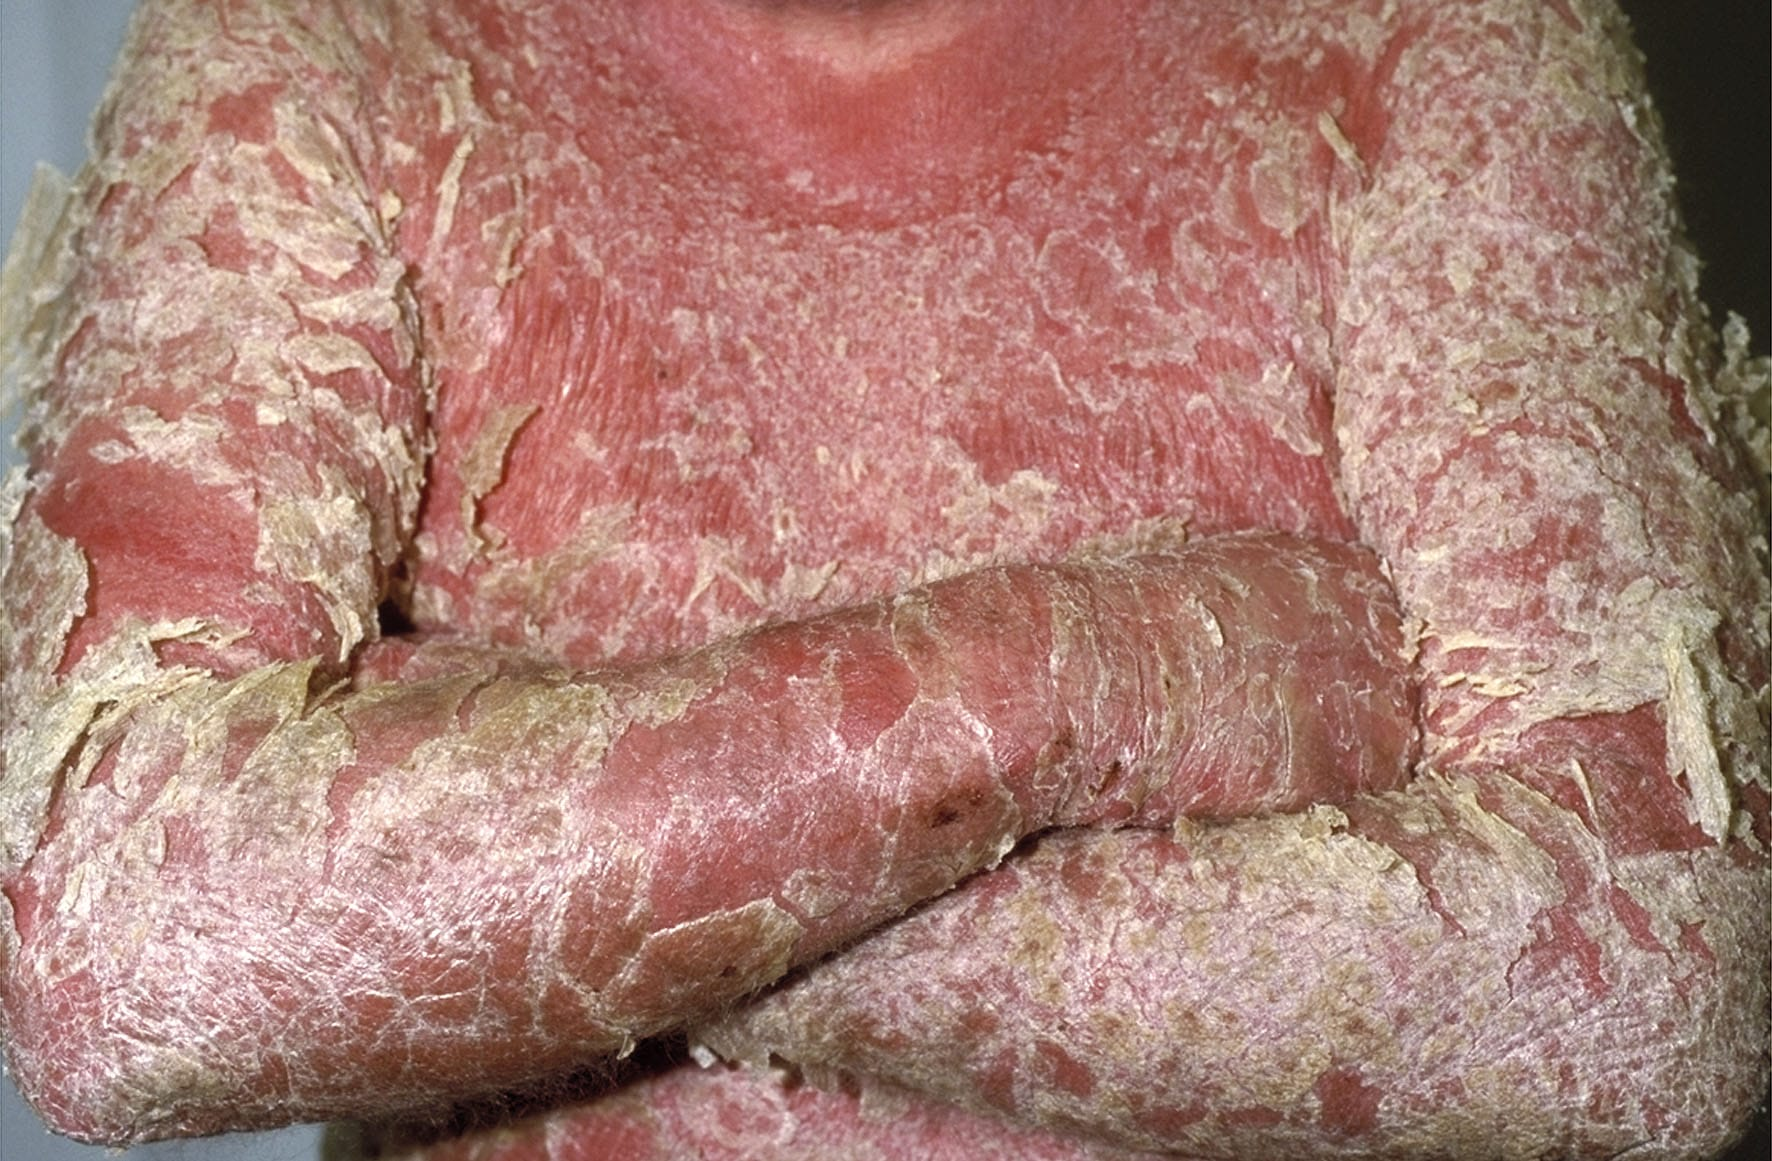 Image result for psoriasis images